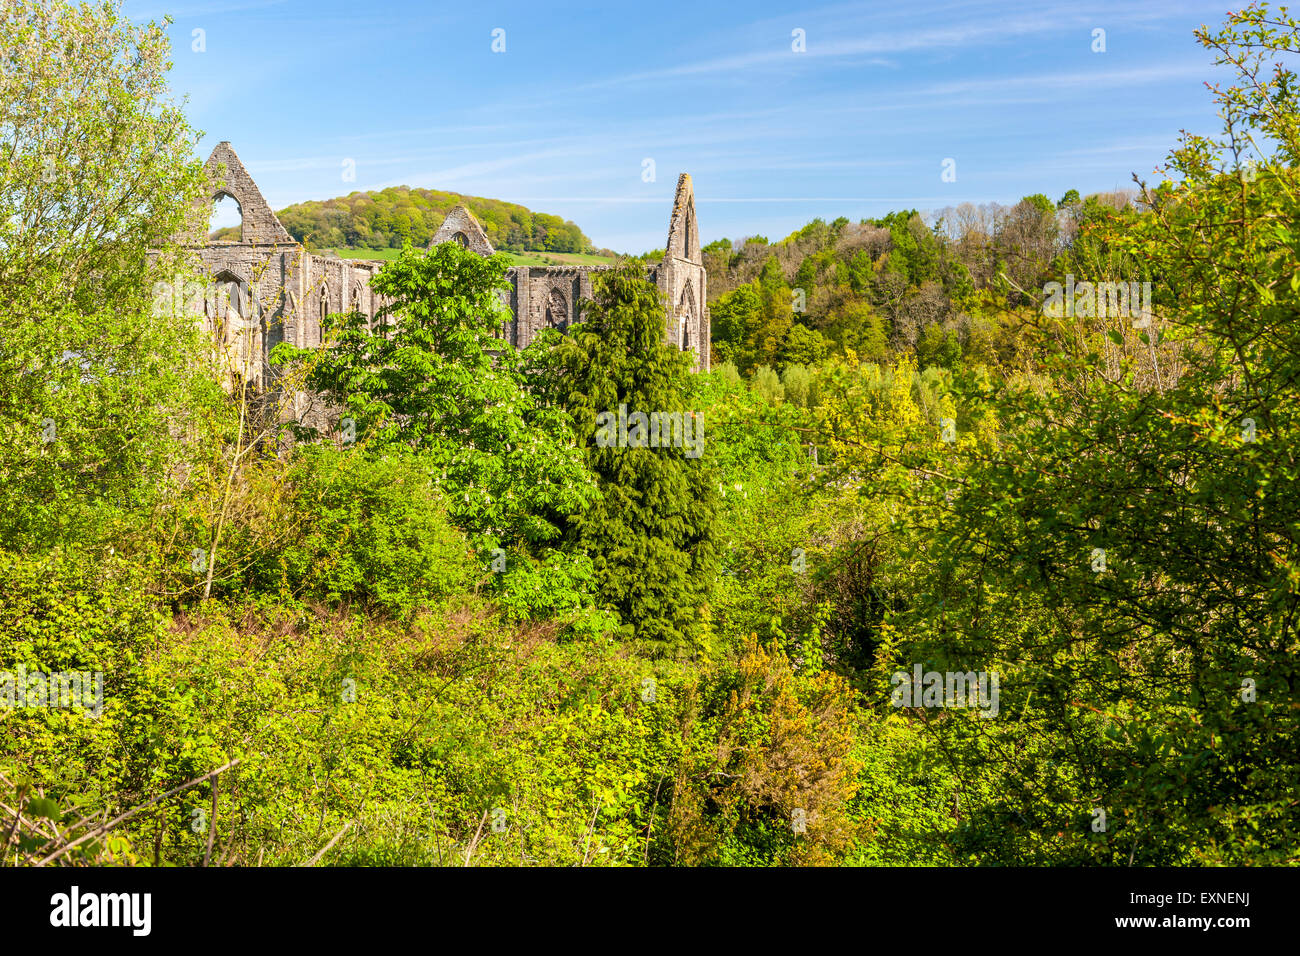 The ruins of Tintern Abbey a medieval Cistercian monastery, Monmouthshire, Wales, United Kingdom, Europe. Stock Photo